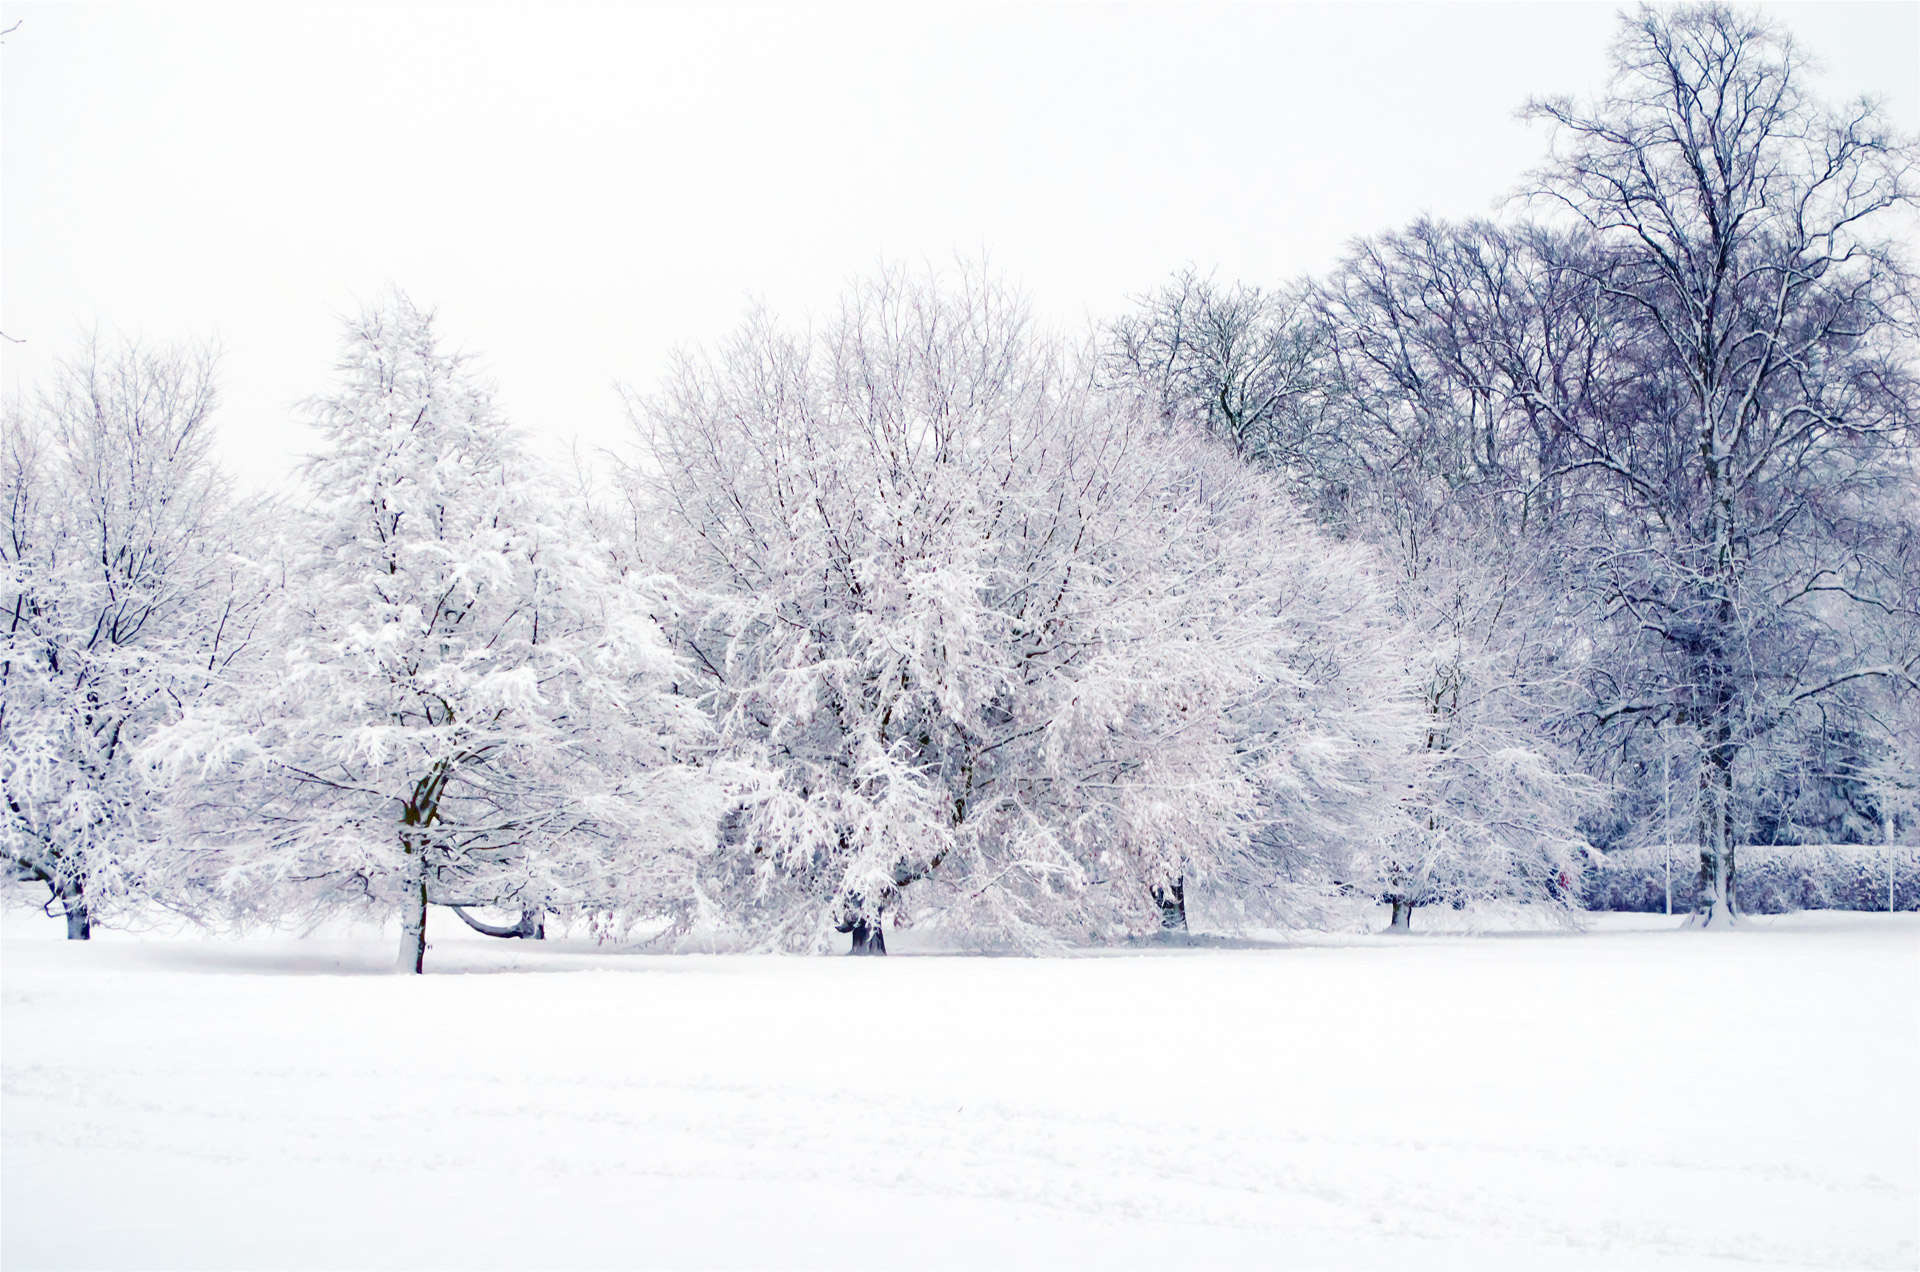 Shutterstock Hd Wallpapers Snowy Landscape 2 Free Stock Photo Public Domain Pictures